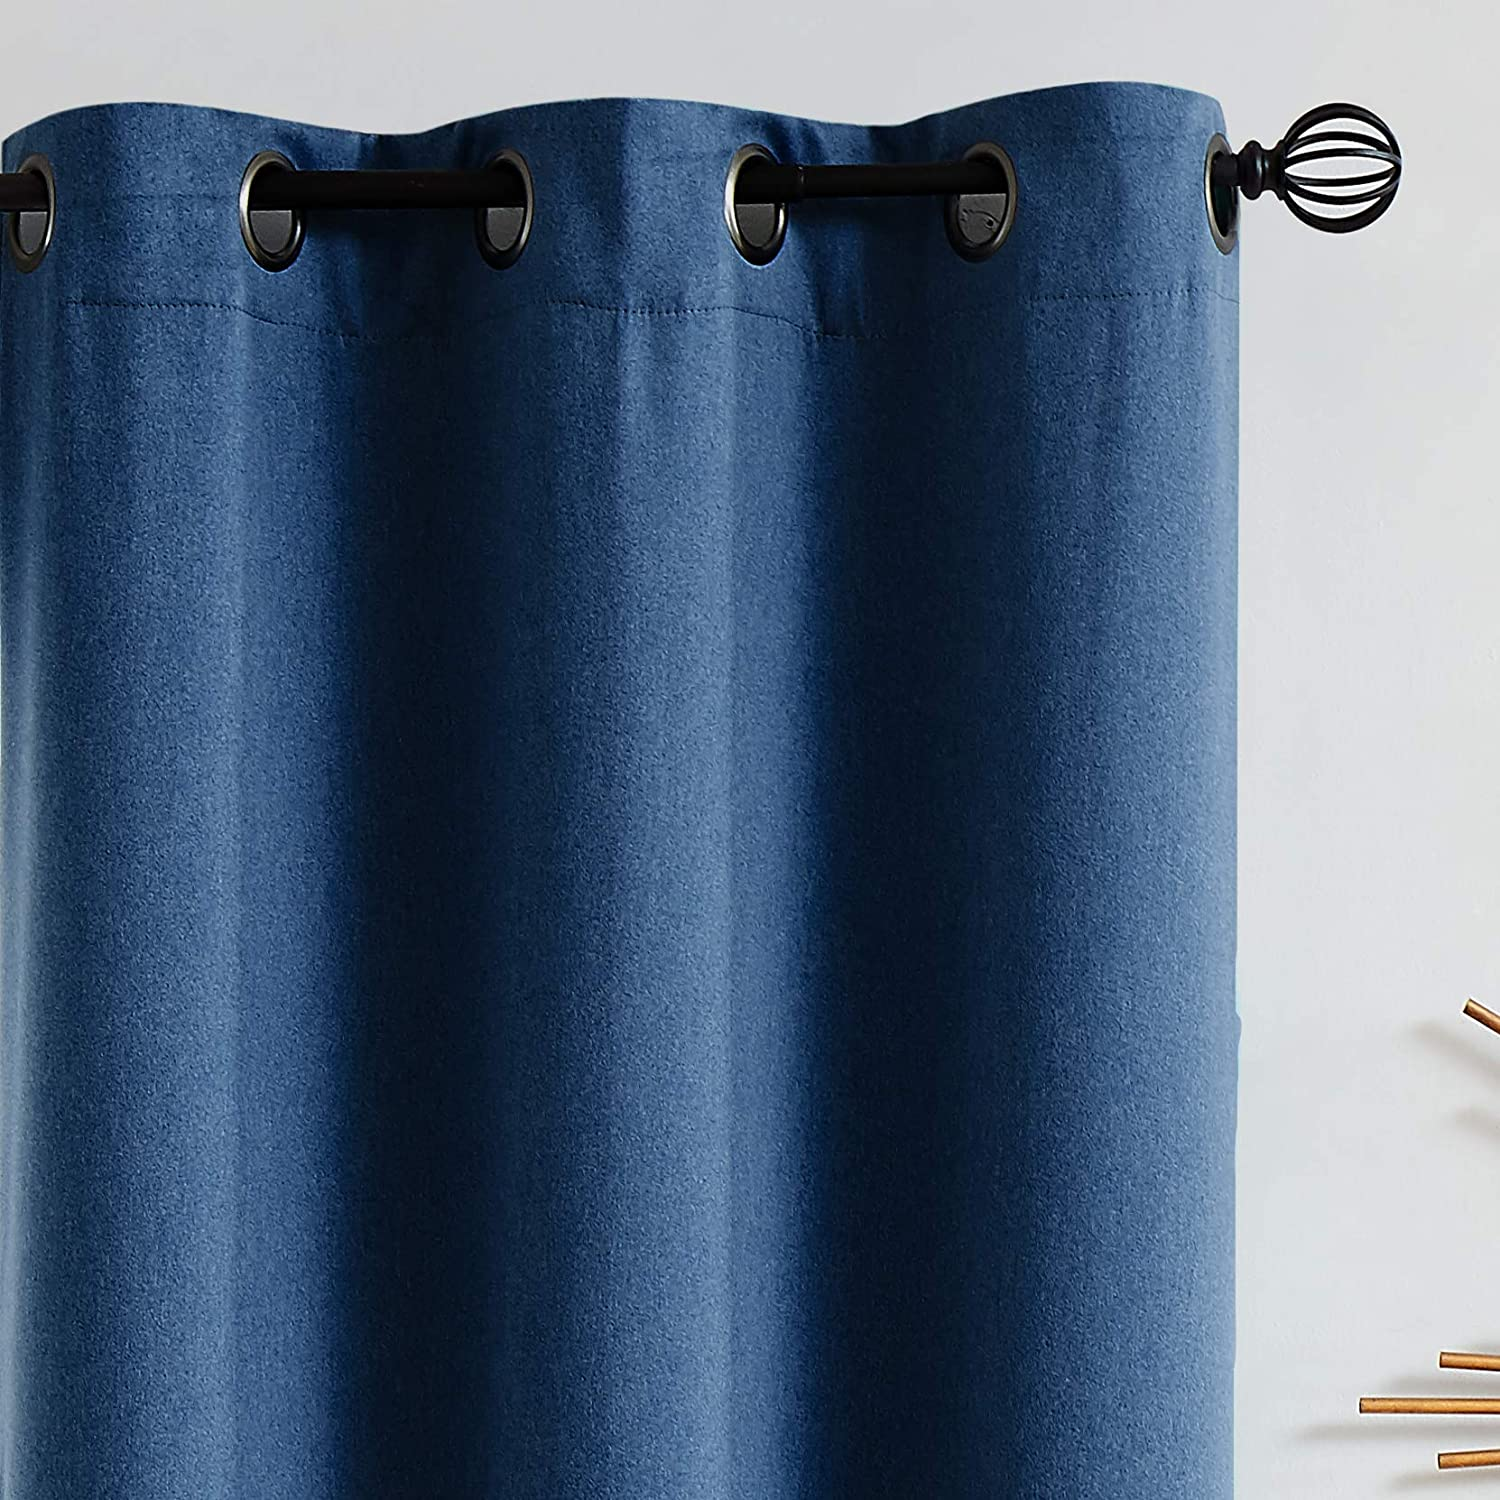 "Fmfunctex Bedroom Full Blackout Curtains 84 inches Long Navy Blue Window Curtain Drapes for Living Room Guest Nursery Baby Men Energy Efficient Curtain Panels for Dorm 52"" w x 2 Panels Grommet Top"